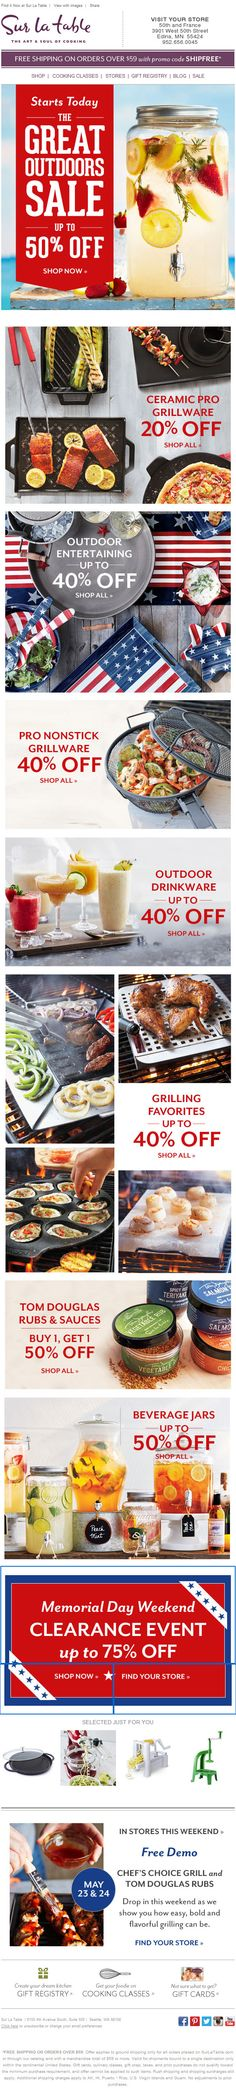 home depot memorial day grill sale